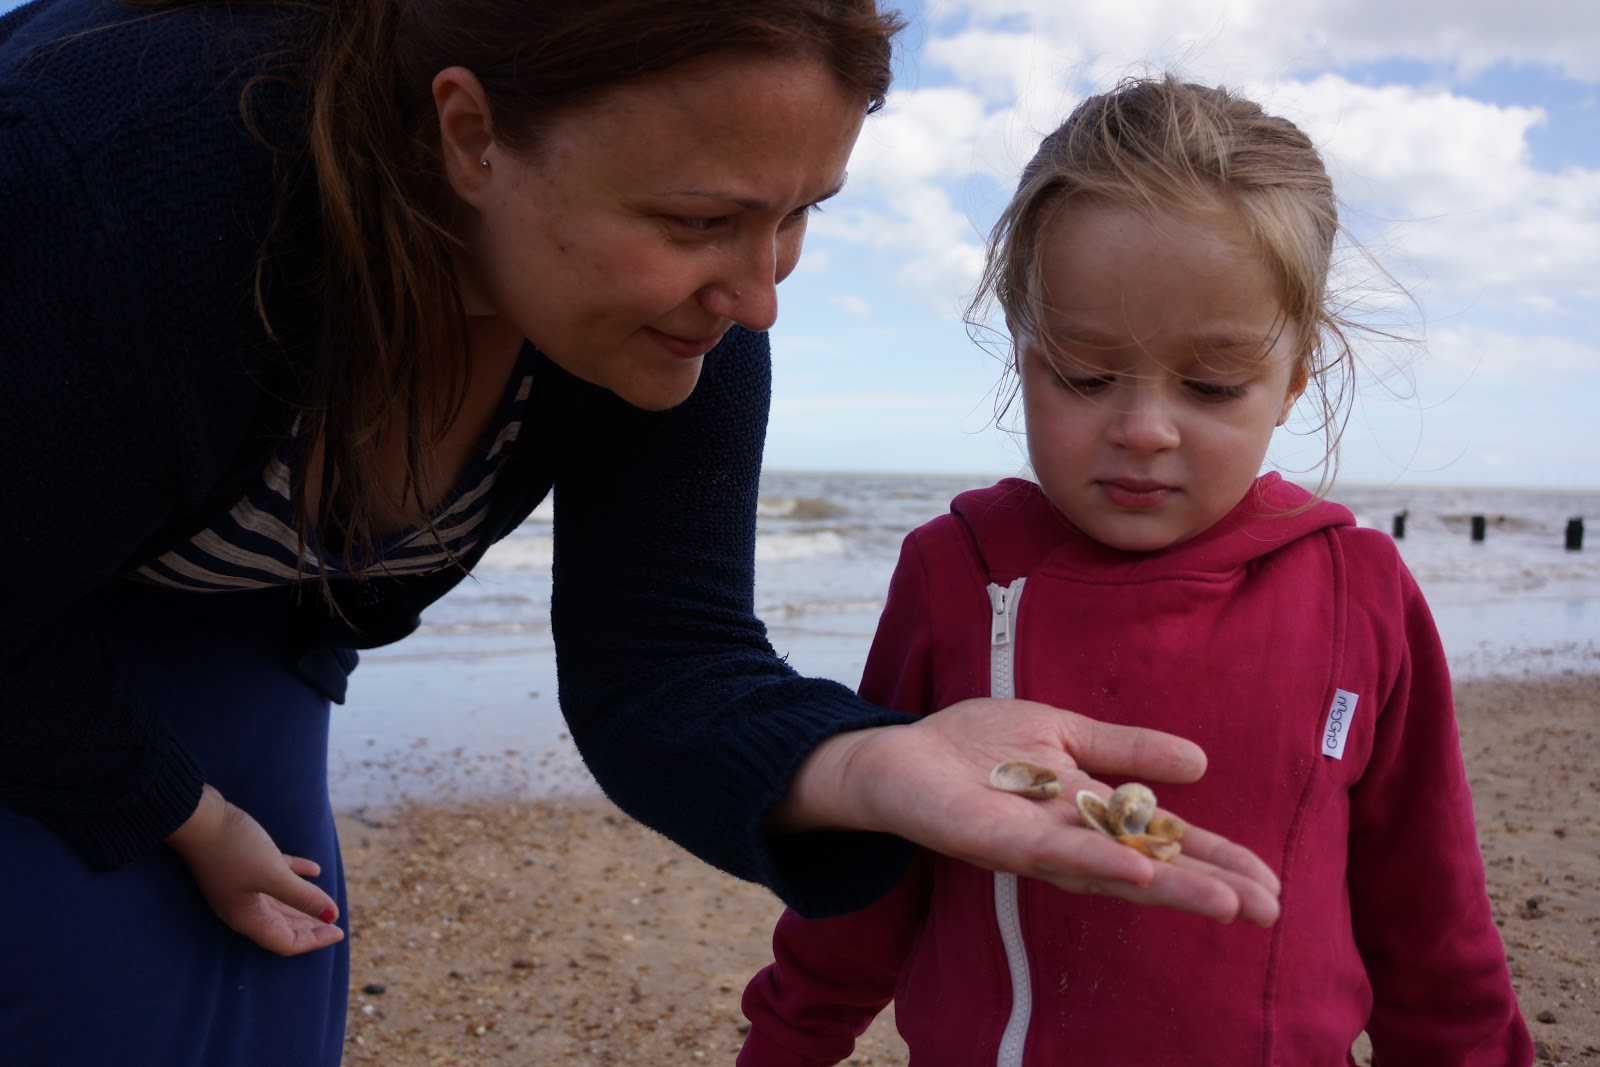 mum showing seashells to daughter